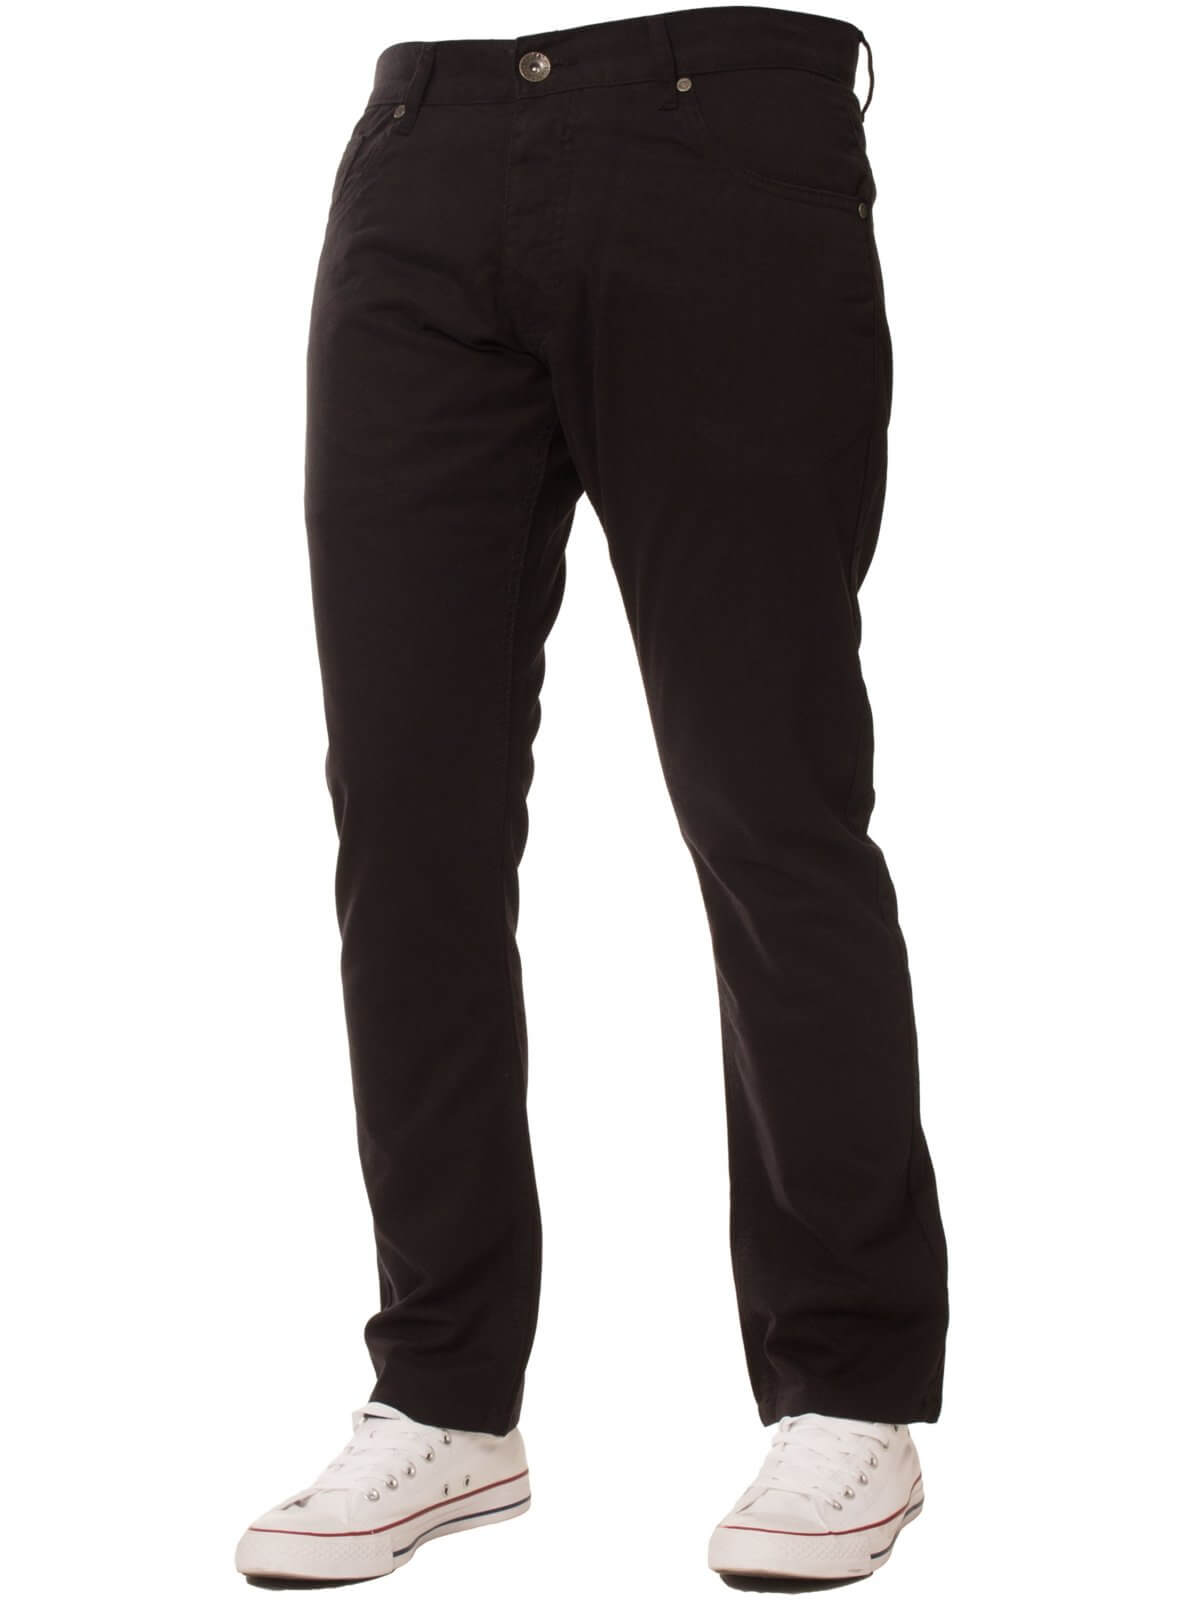 Mens Slim Fit Black Chino Pants | Enzo Designer Menswear